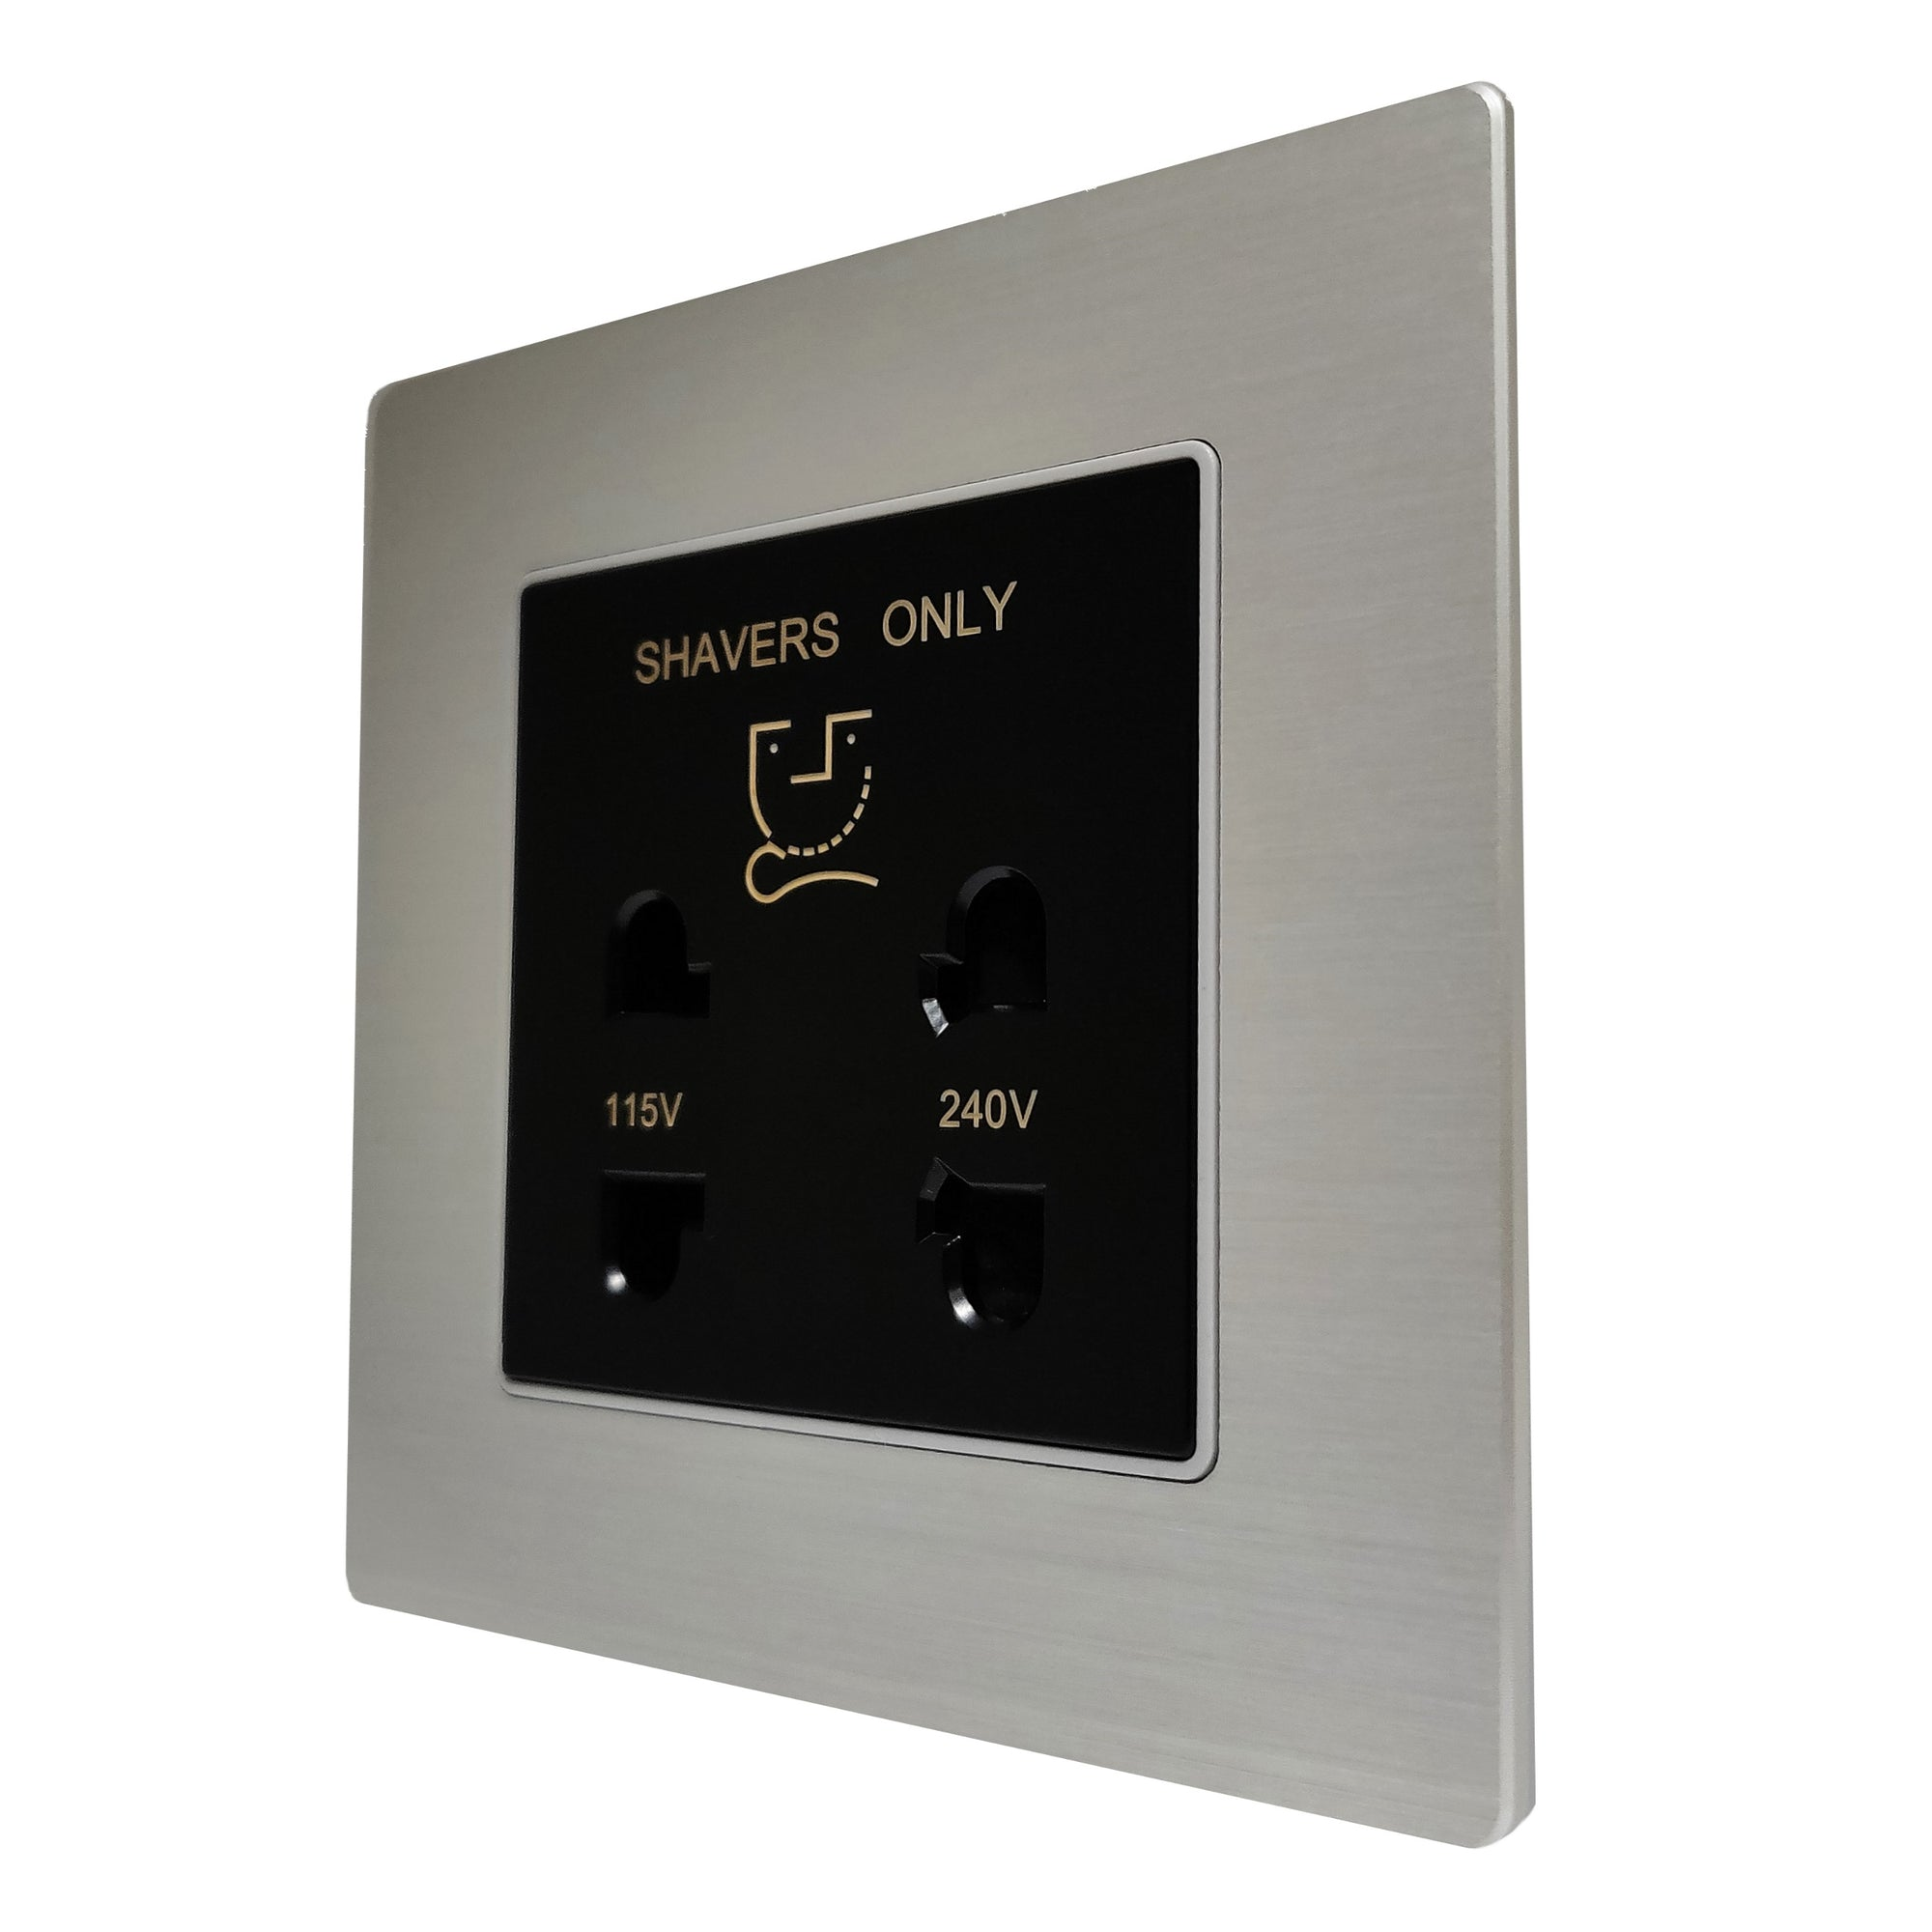 Single Shaver AC Wall Power Socket in Silver Brushed Alum Frame & Black Centre